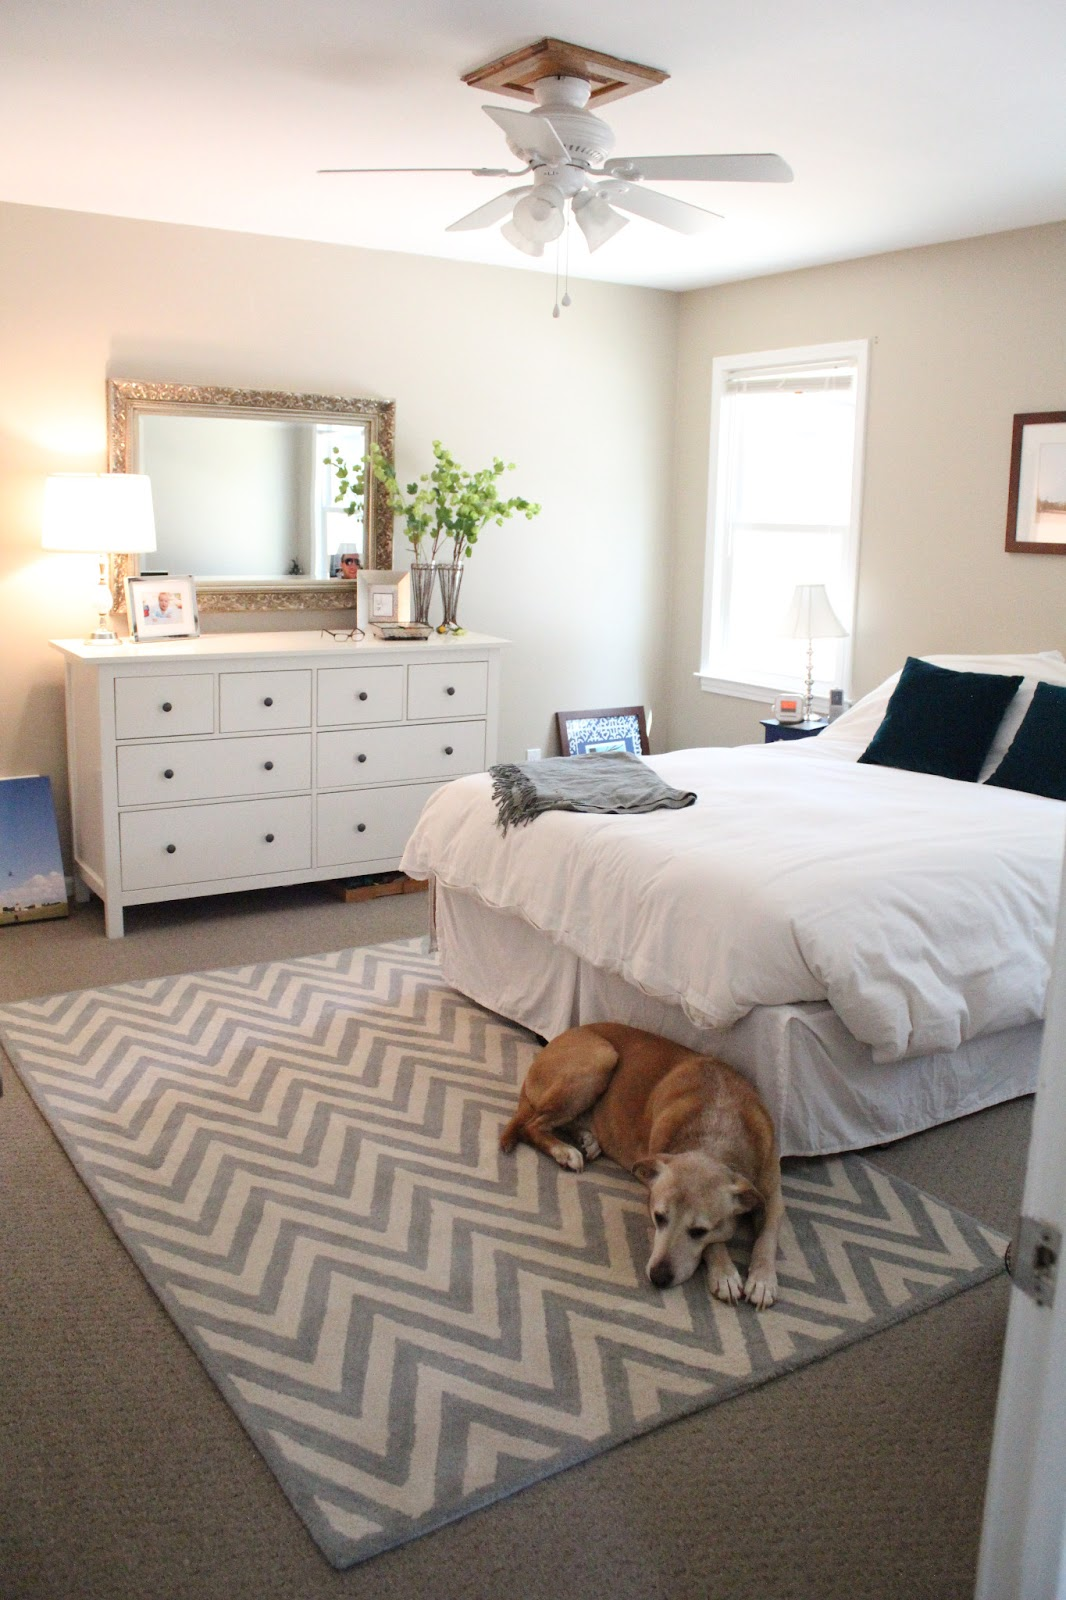 Ten june our rental house a master bedroom tour - How to decorate simple room ...